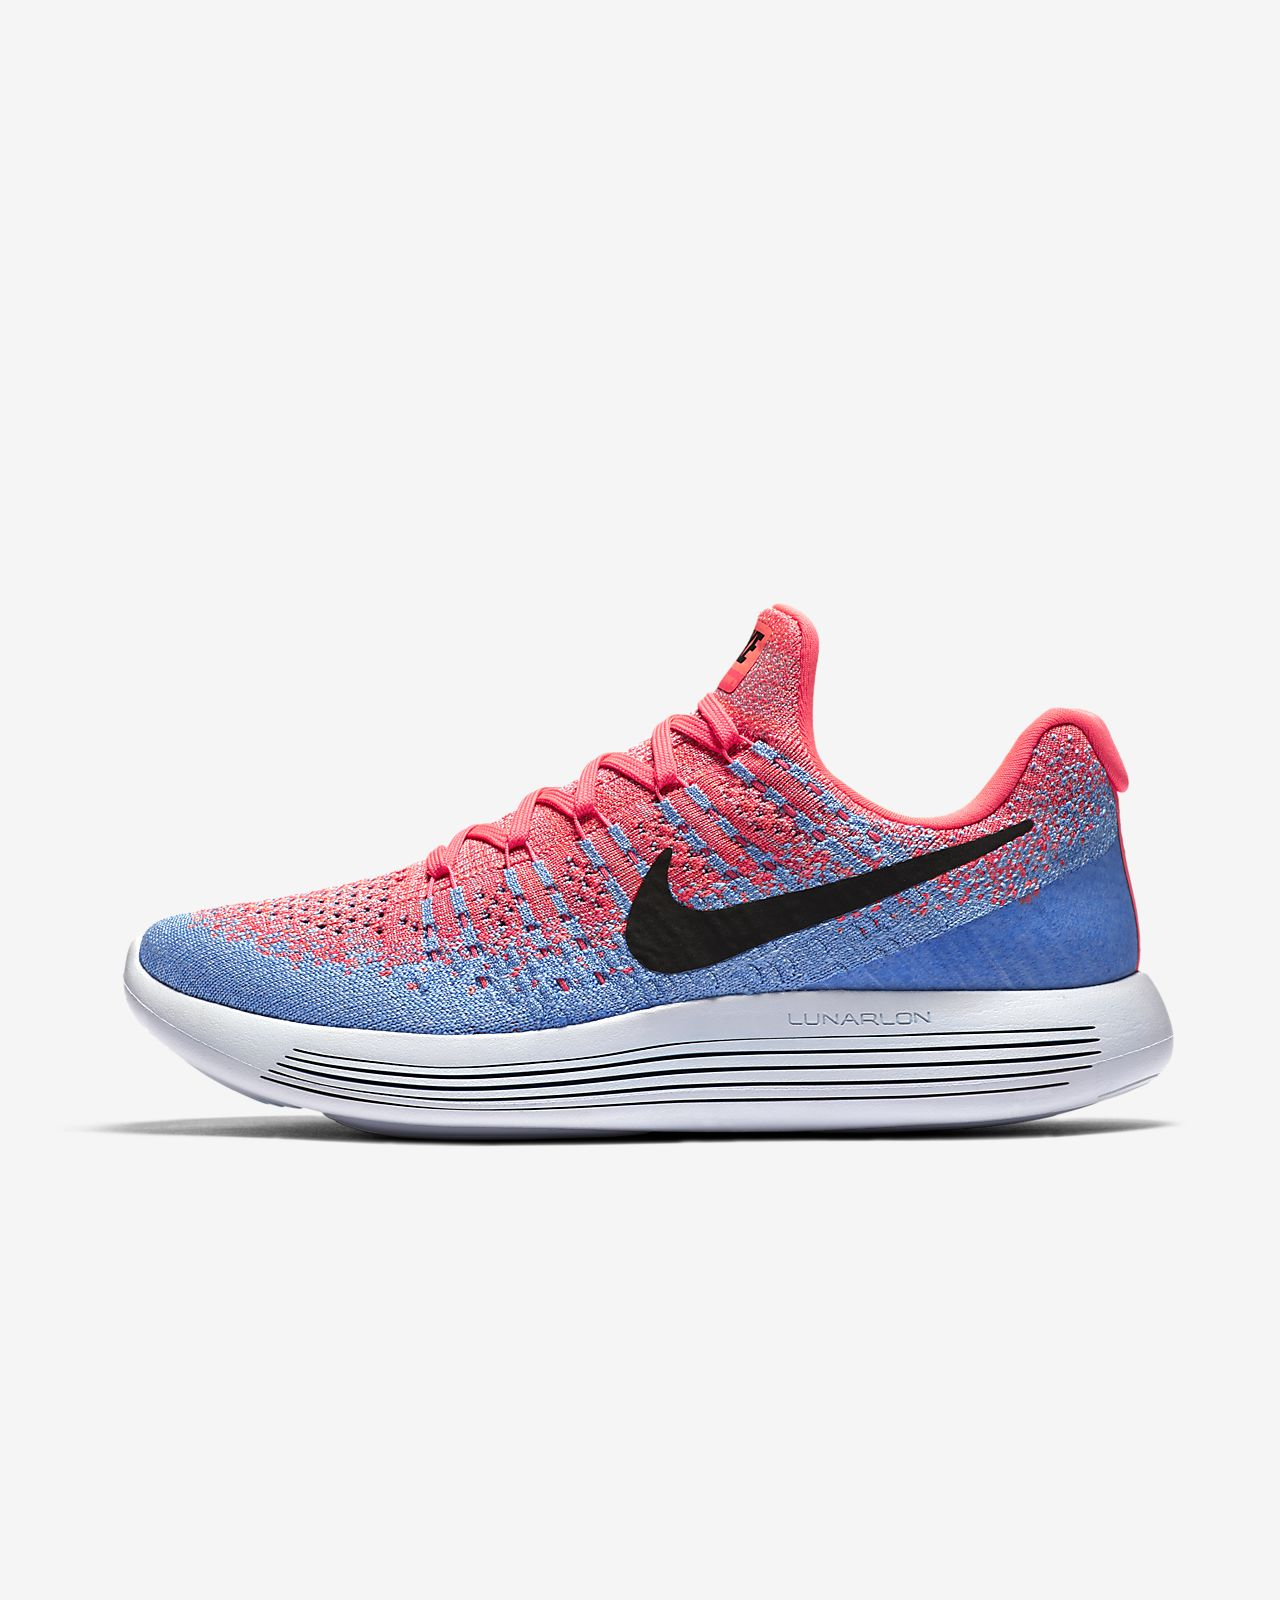 quality design bc113 47582 Nike LunarEpic Low Flyknit 2 Women's Running Shoe